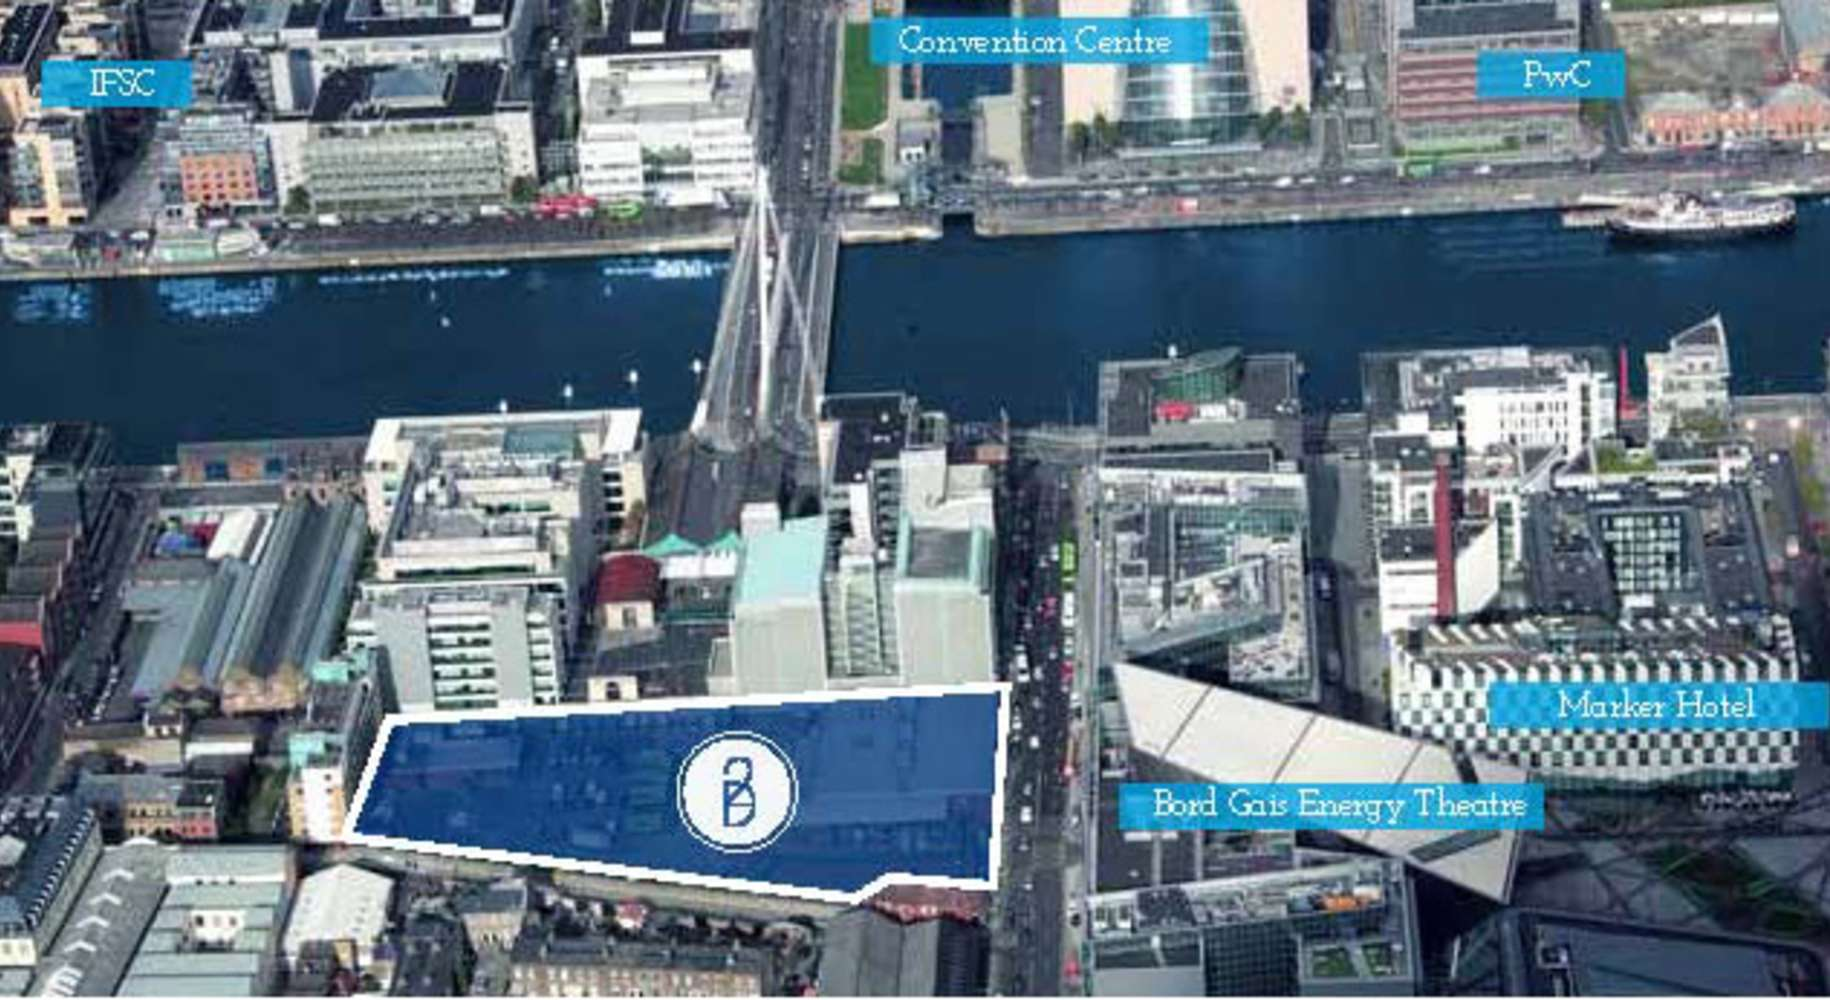 Development land Dublin 2,  - Development Opportunity - Cardiff Lane (An Post Premises)